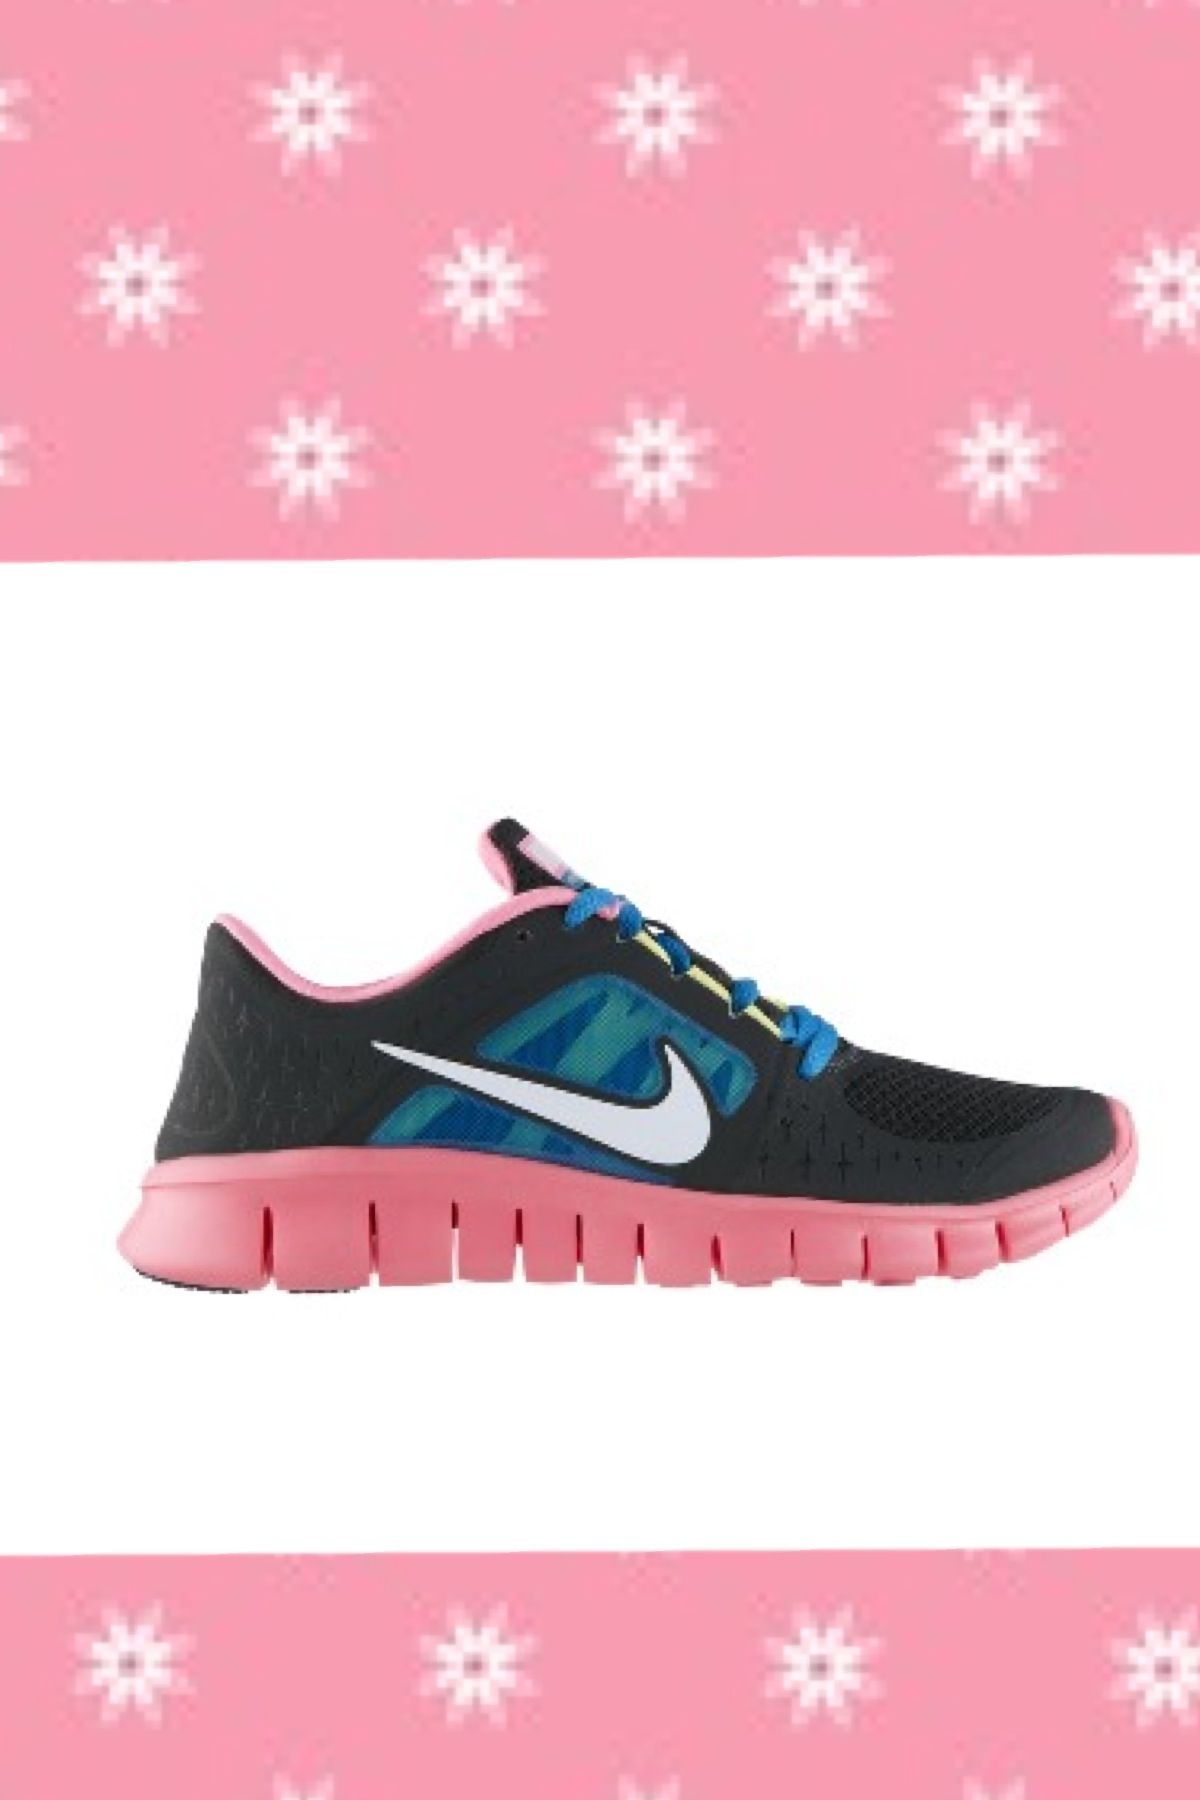 Original Cute Nike Running Shoes For Girls Shoes Nike Running Sportswear